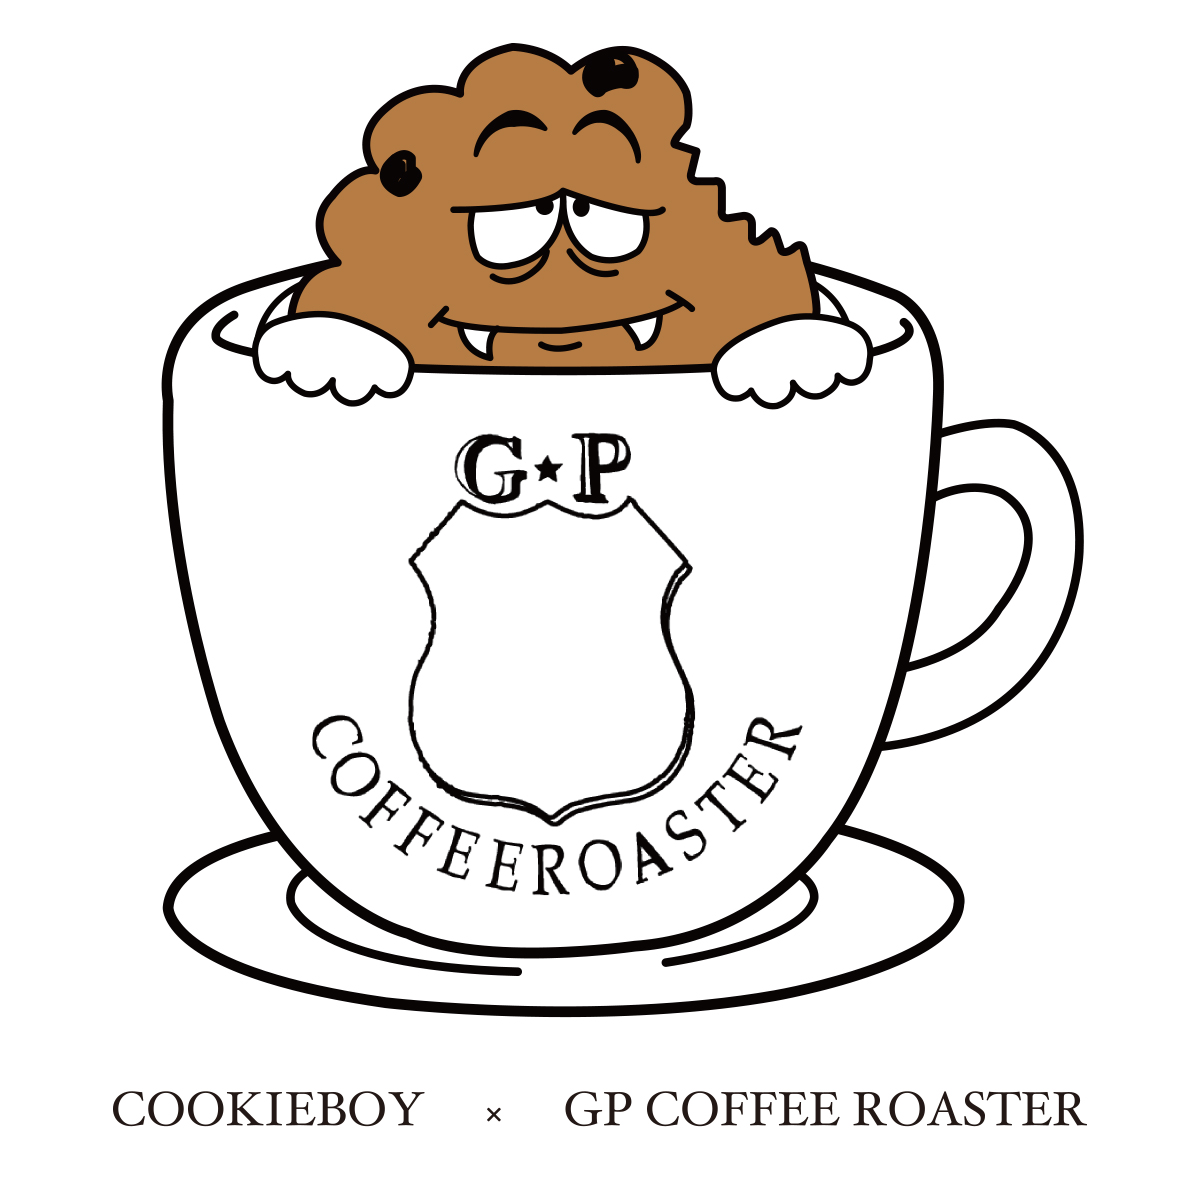 COOKIEBOYxG☆P COFFEE ROASTER